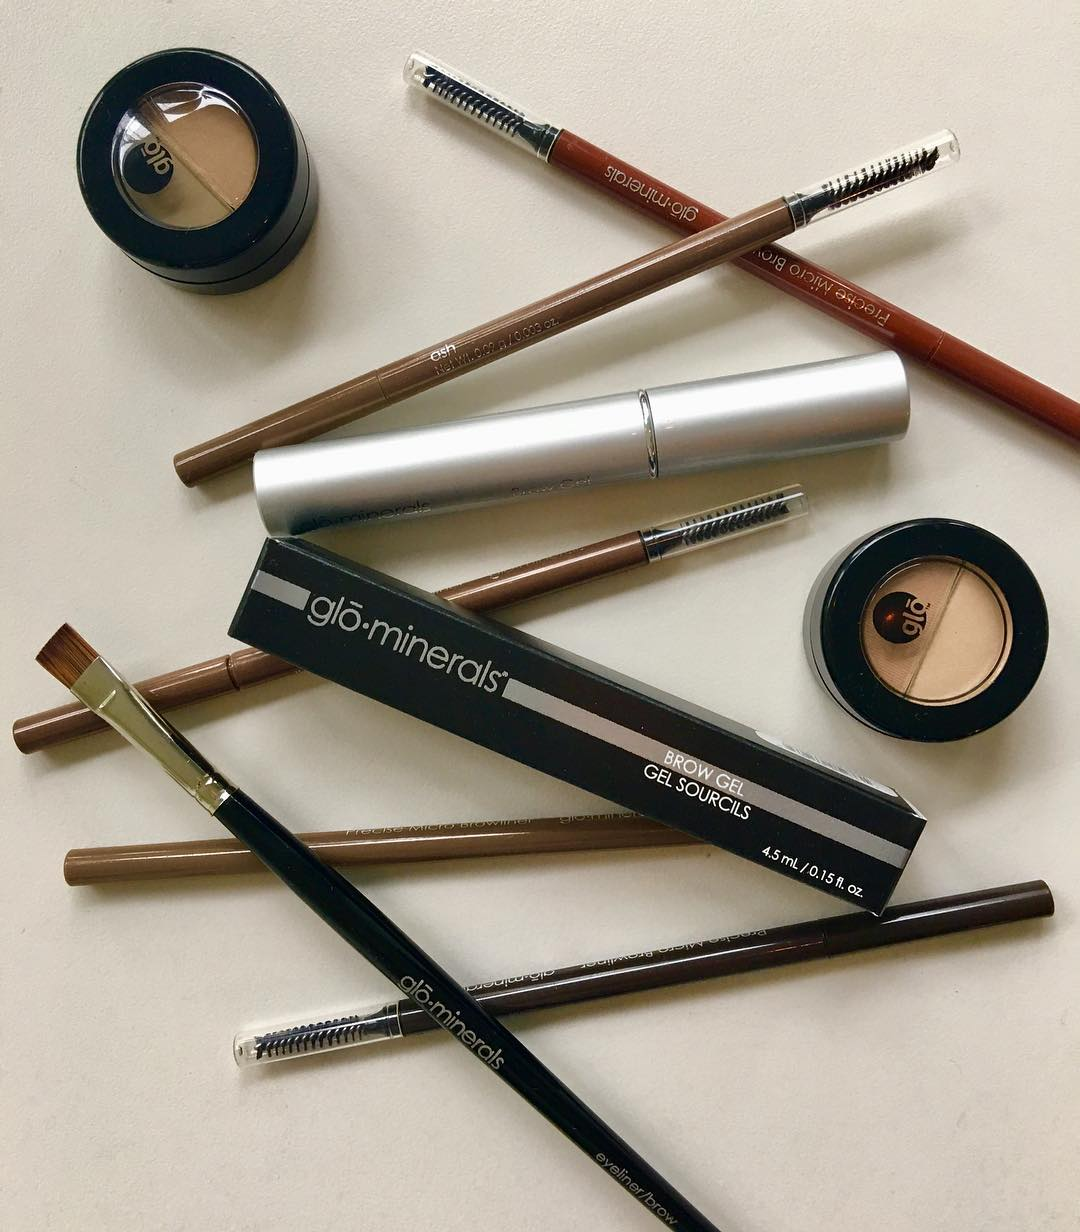 Glo Brow Tools